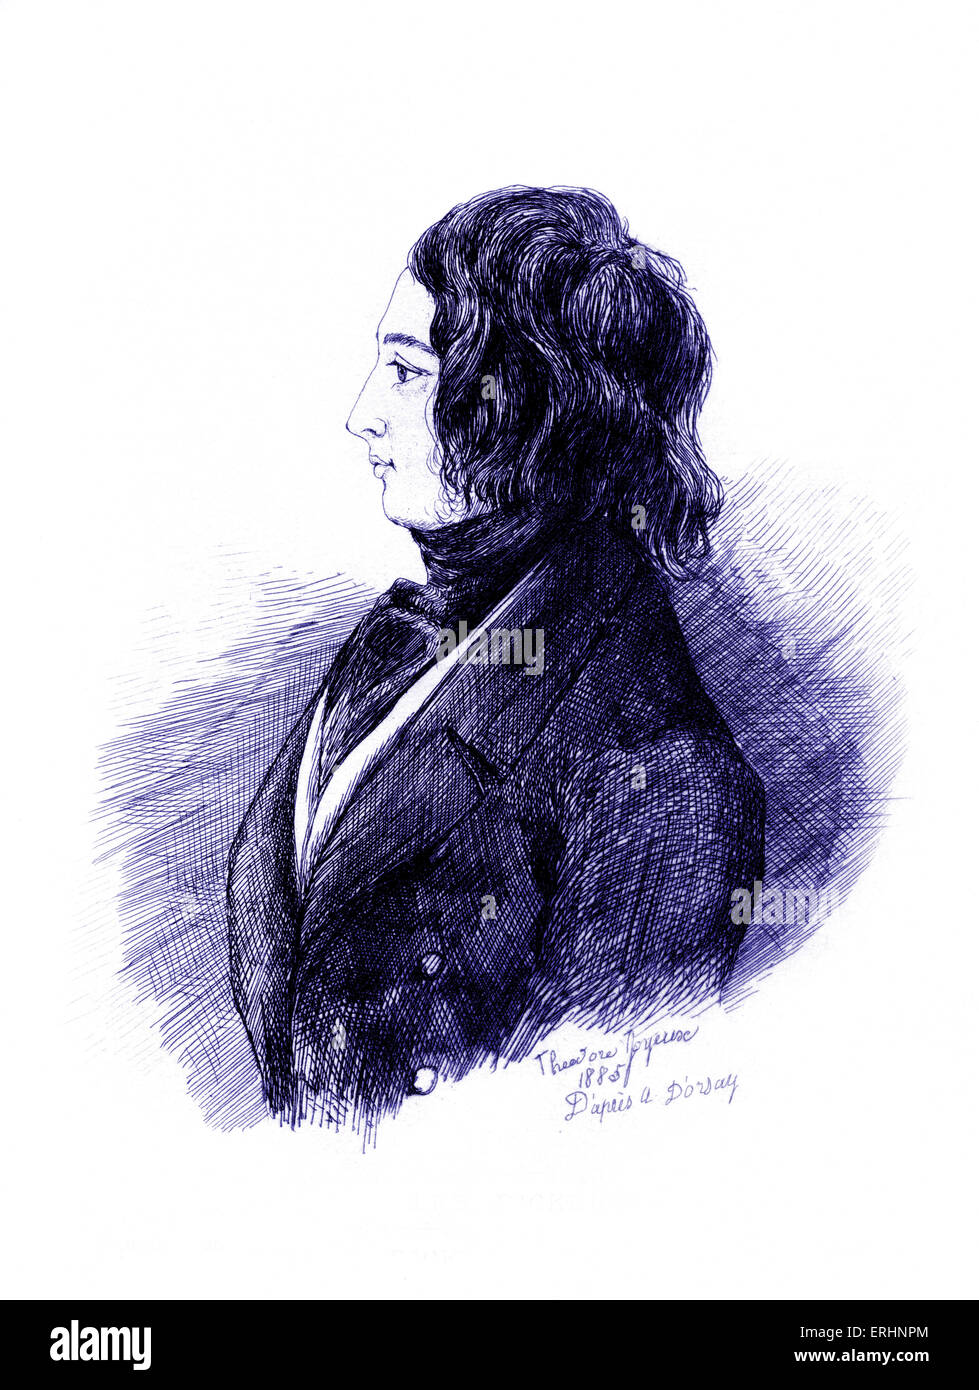 Charles Dickens Pen and ink drawing by Comte d'Orsay in 1845.   Signed Theodore Joyeuse 1885 after D'Orsay. - Stock Image